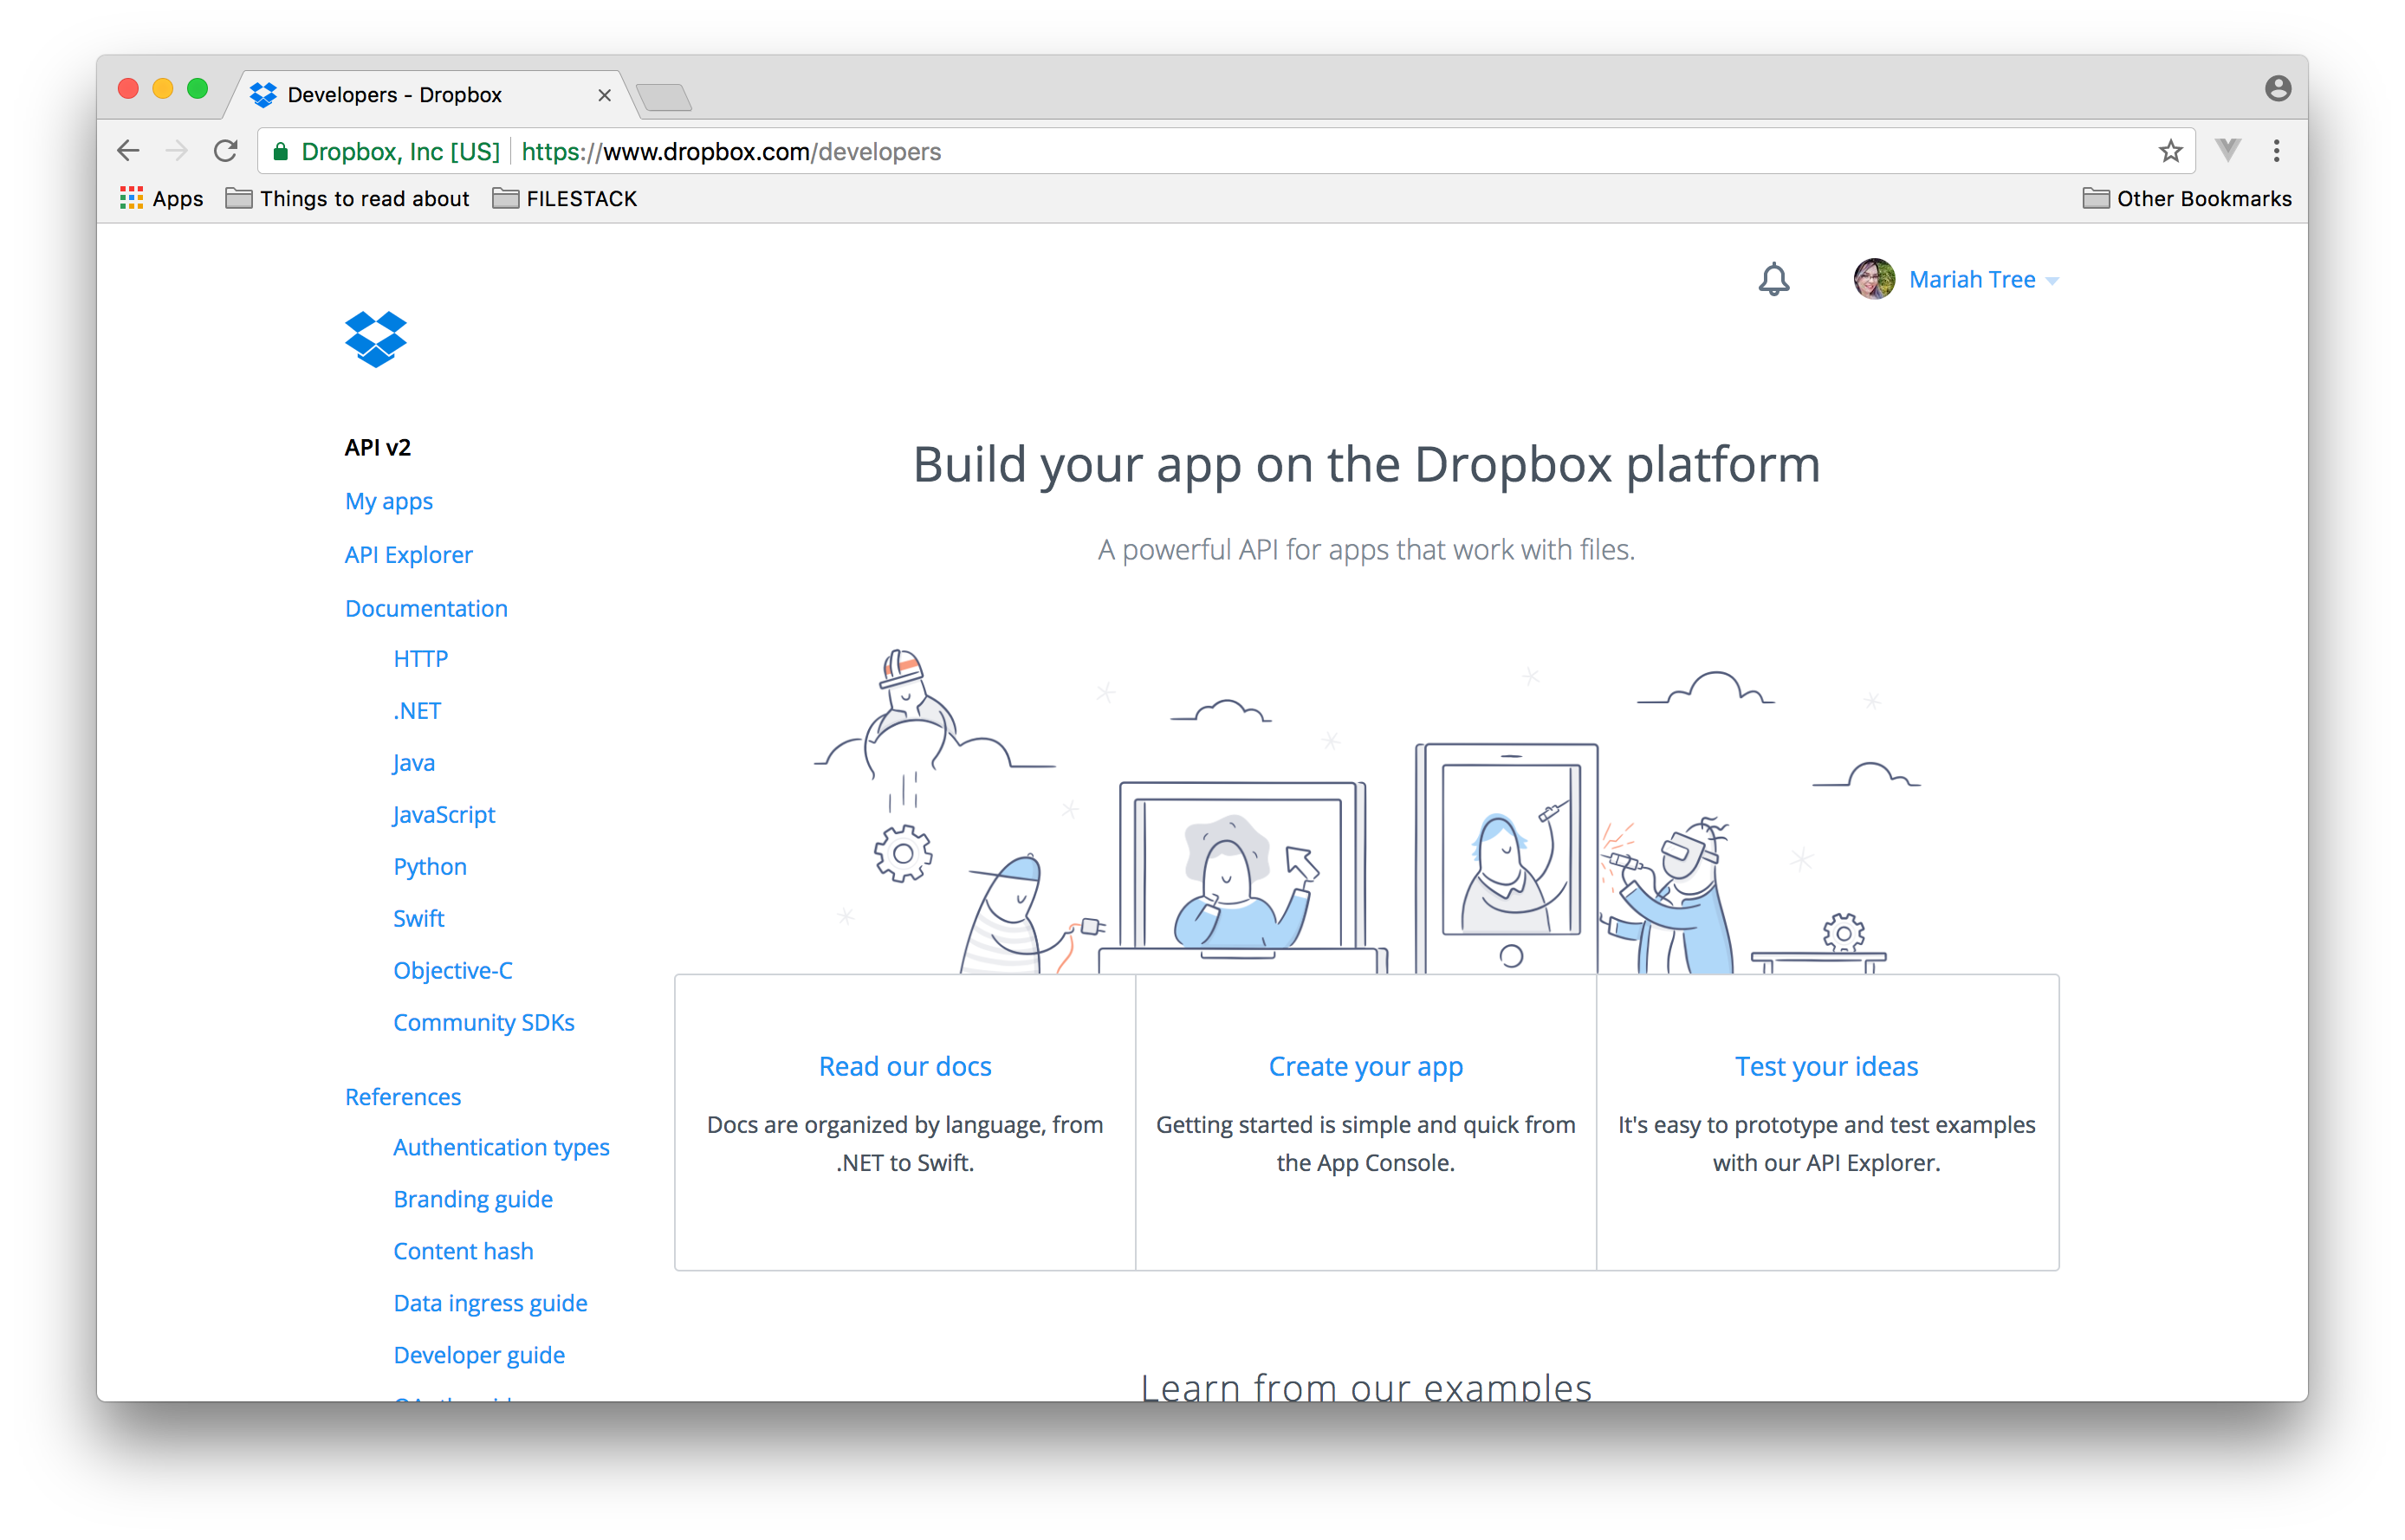 Screenshot showing the Dropbox developers home screen